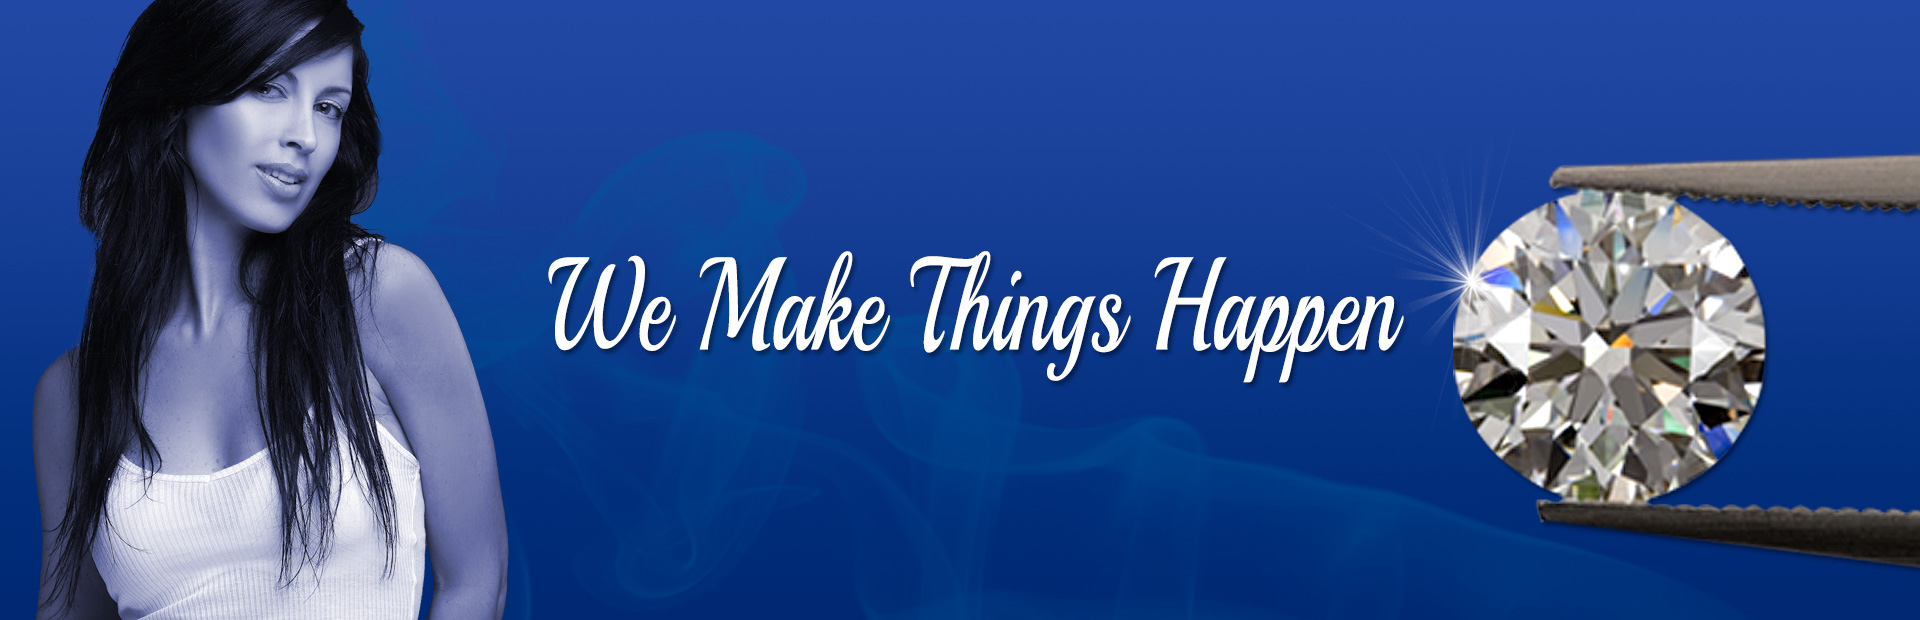 We make Things Happen 2